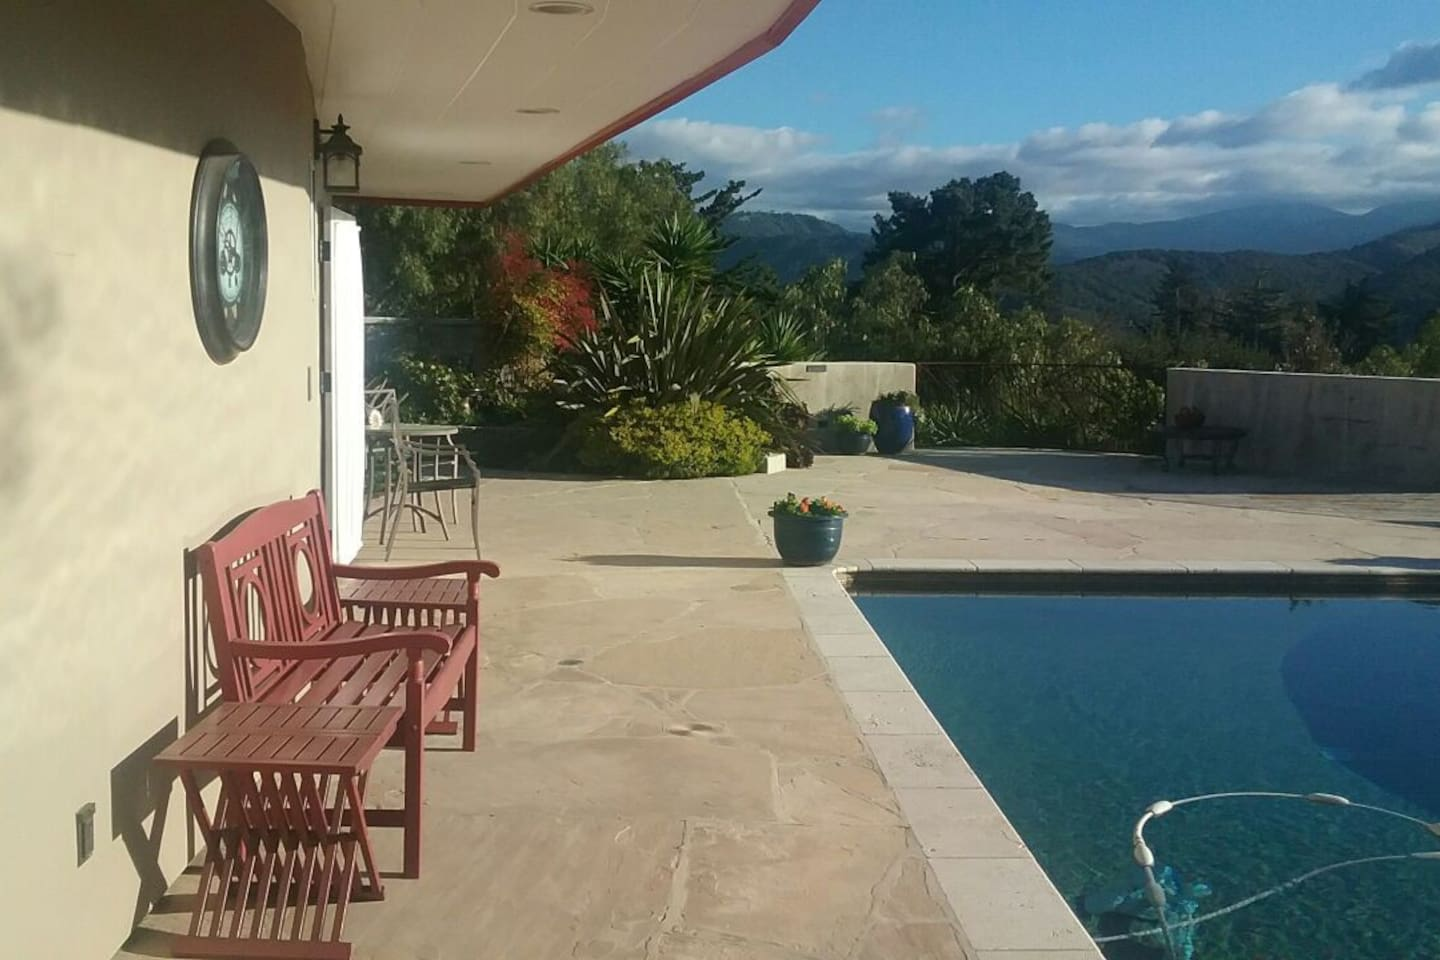 Your suite is on the left, and looks out over Carmel Valley.